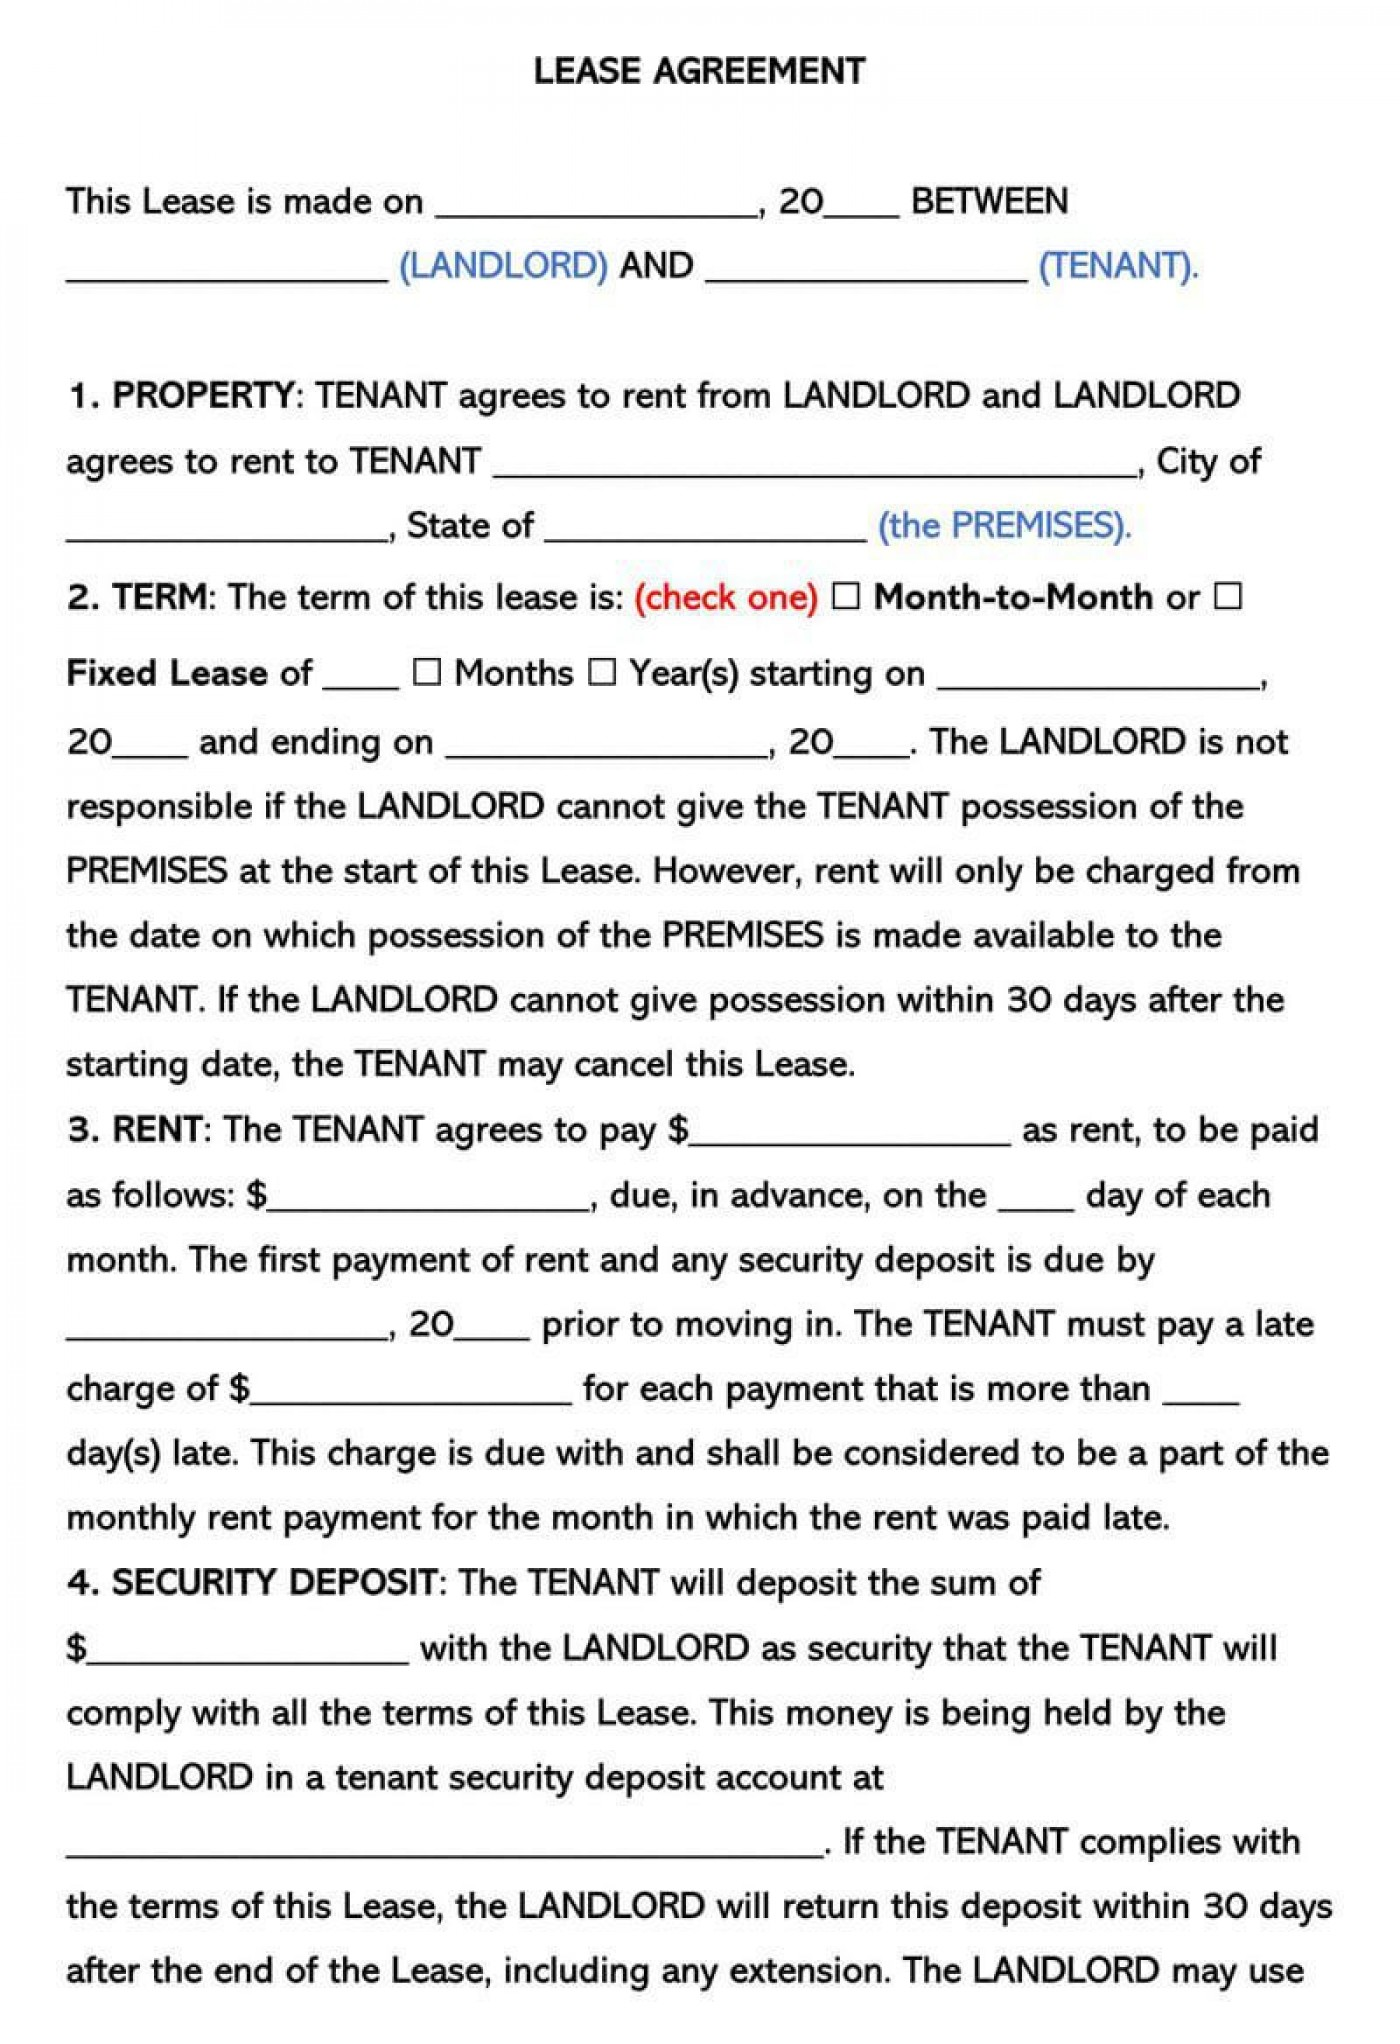 003 Stunning Apartment Lease Agreement Form Texa Example 1400